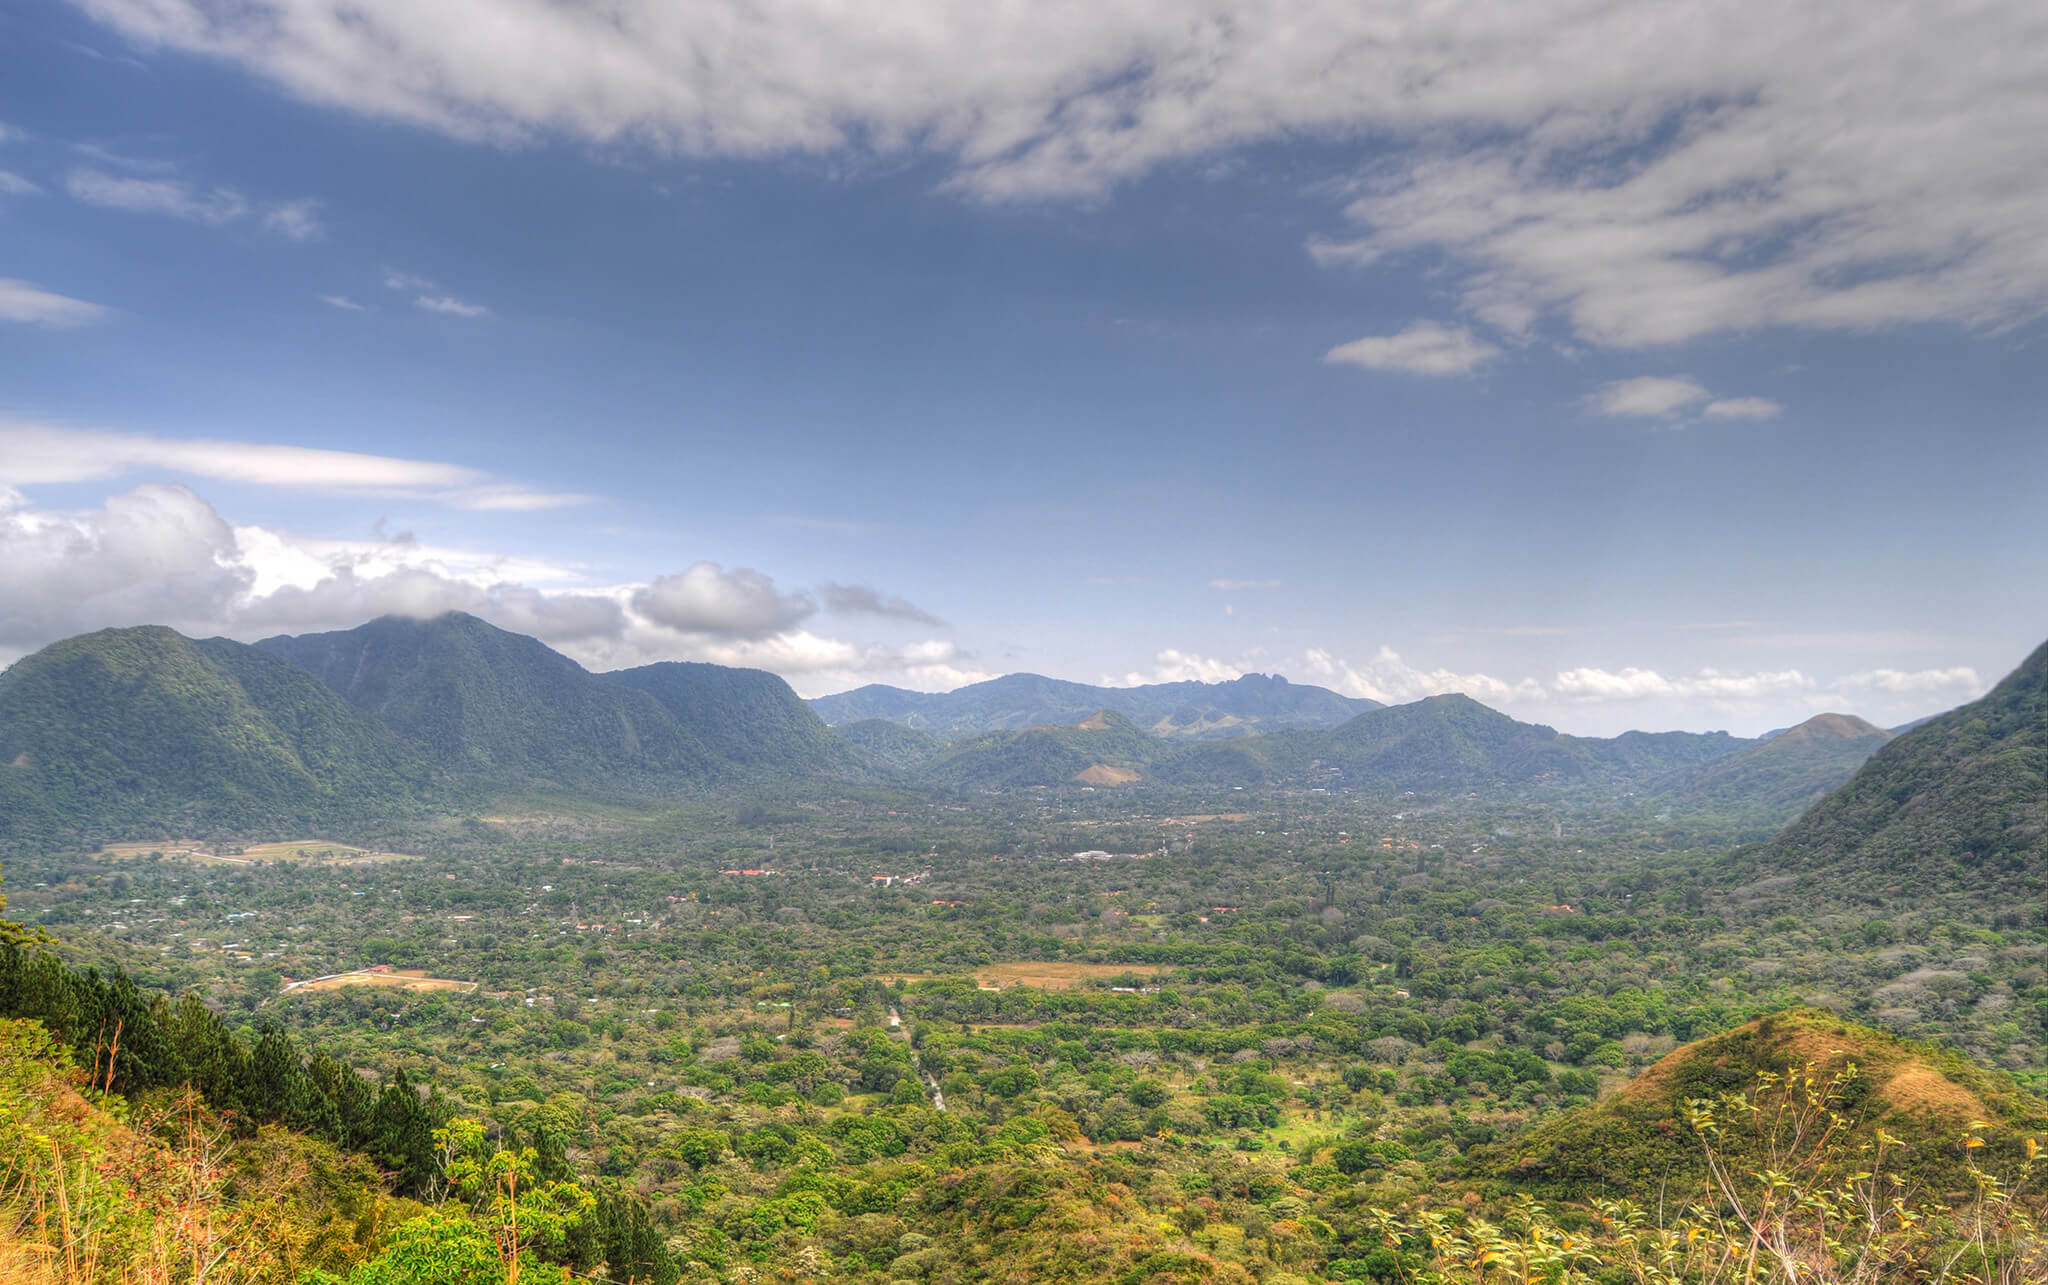 Panoramic view of the volcano crater of El Valle de Anton, Panama